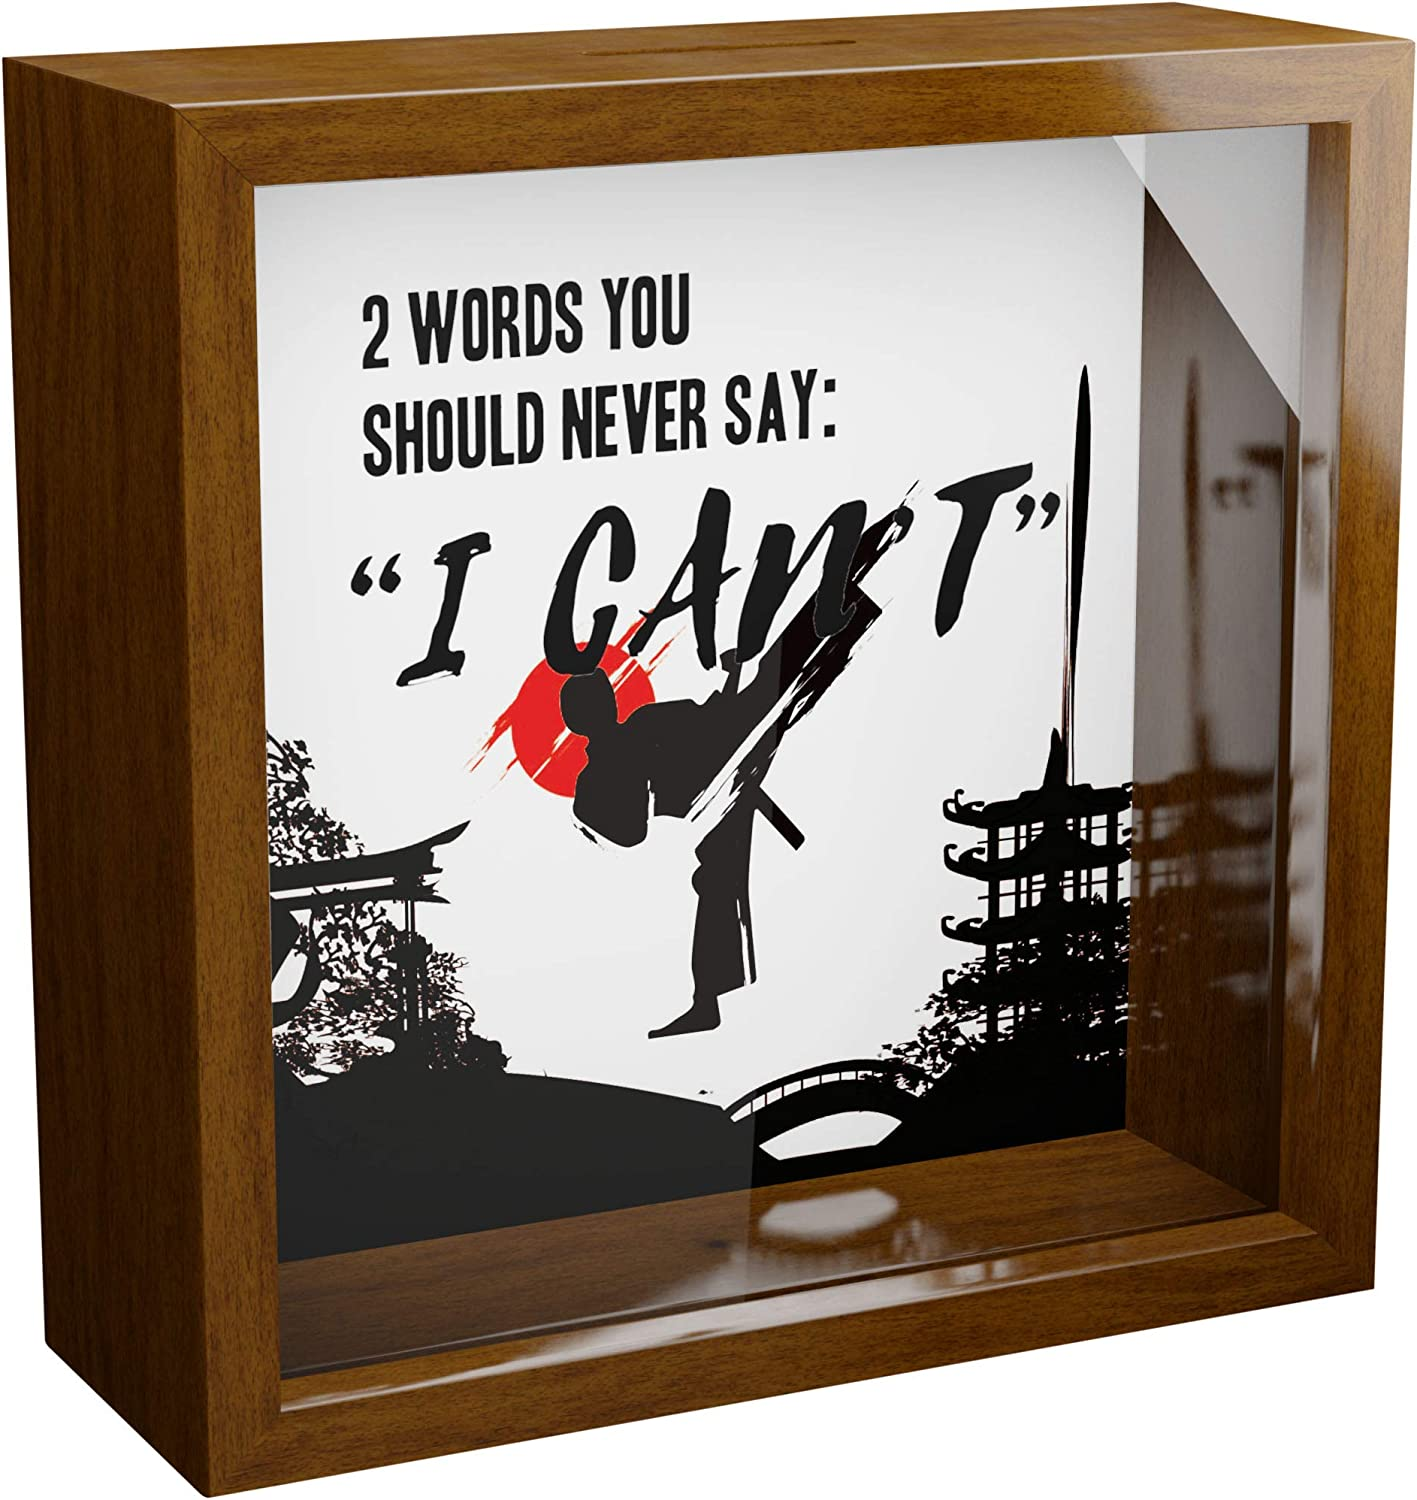 Karate Gifts | 6x6x2 Memory Shadow Box with Glass Front | MMA Wall Decor Keepsake Box | Martial Arts Lovers Artwork Frame | Special Karate or Taekwondo Present for Women or Men